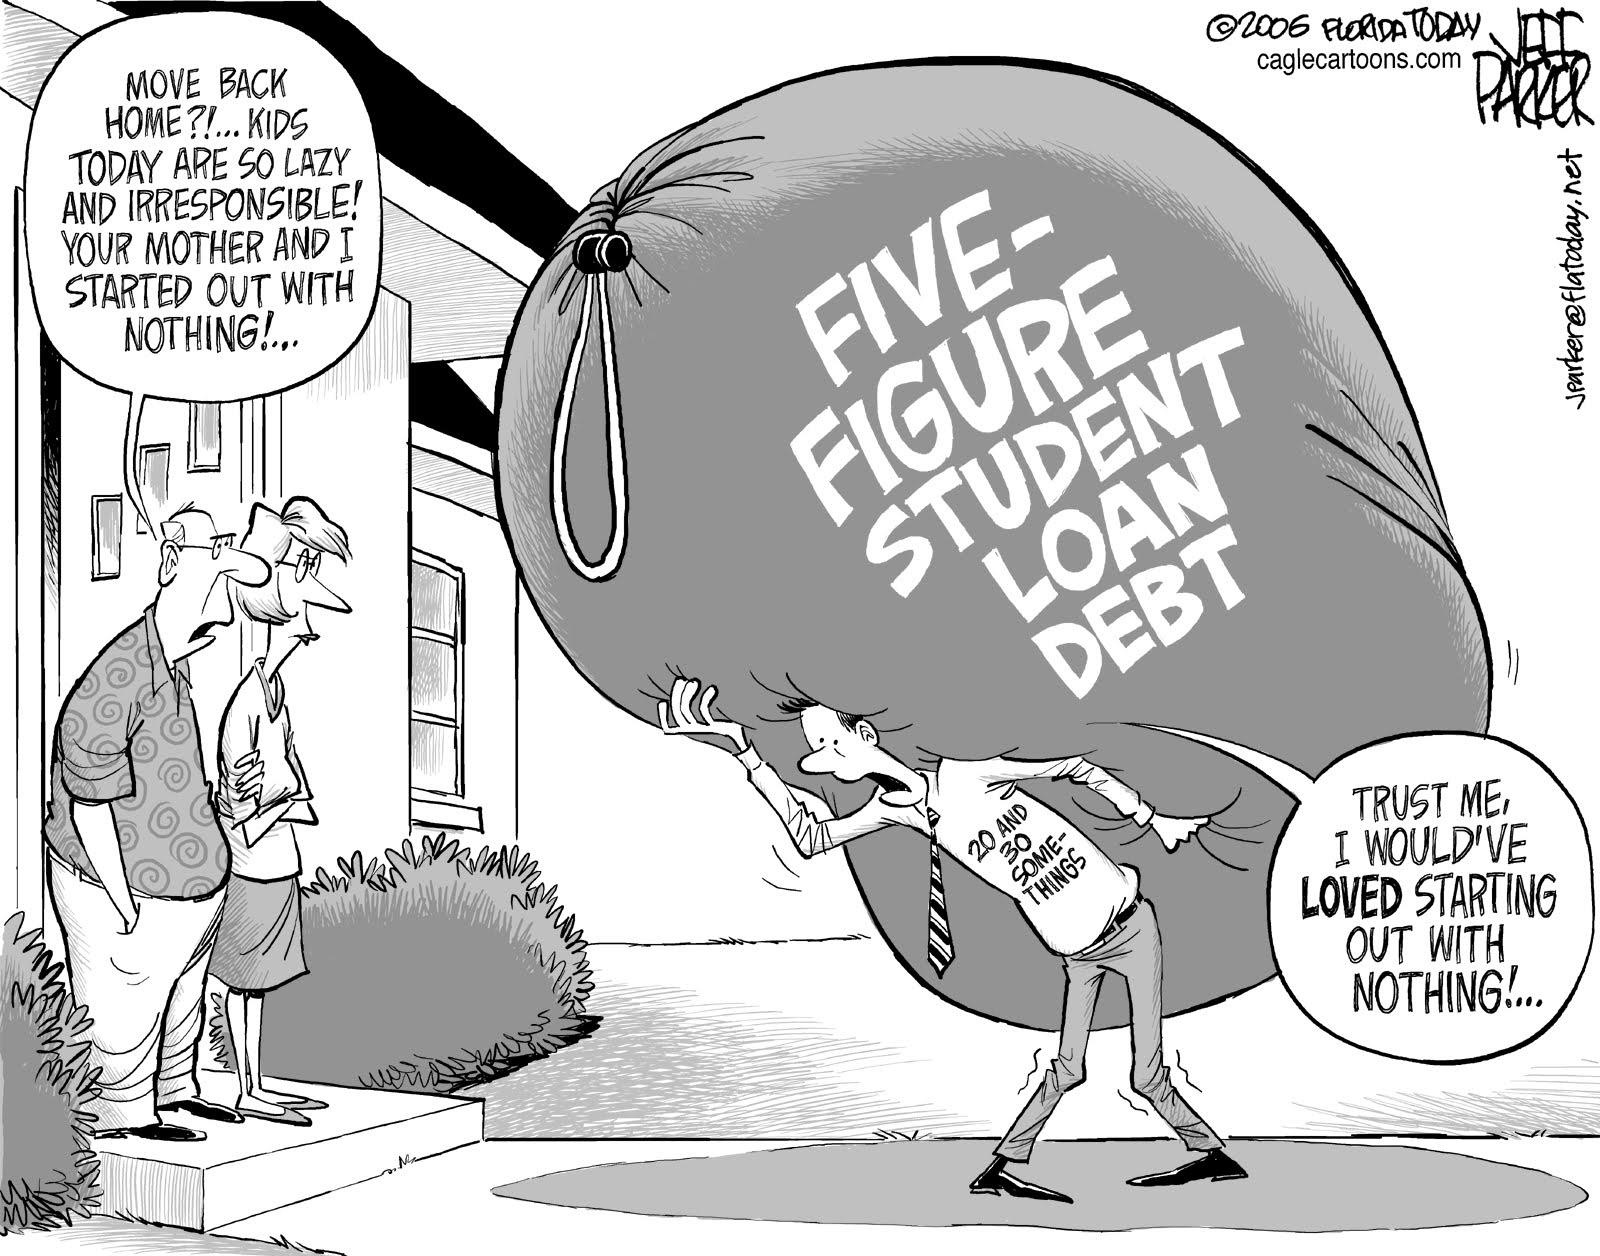 How does a middle class kid get student loands and aid from the government?